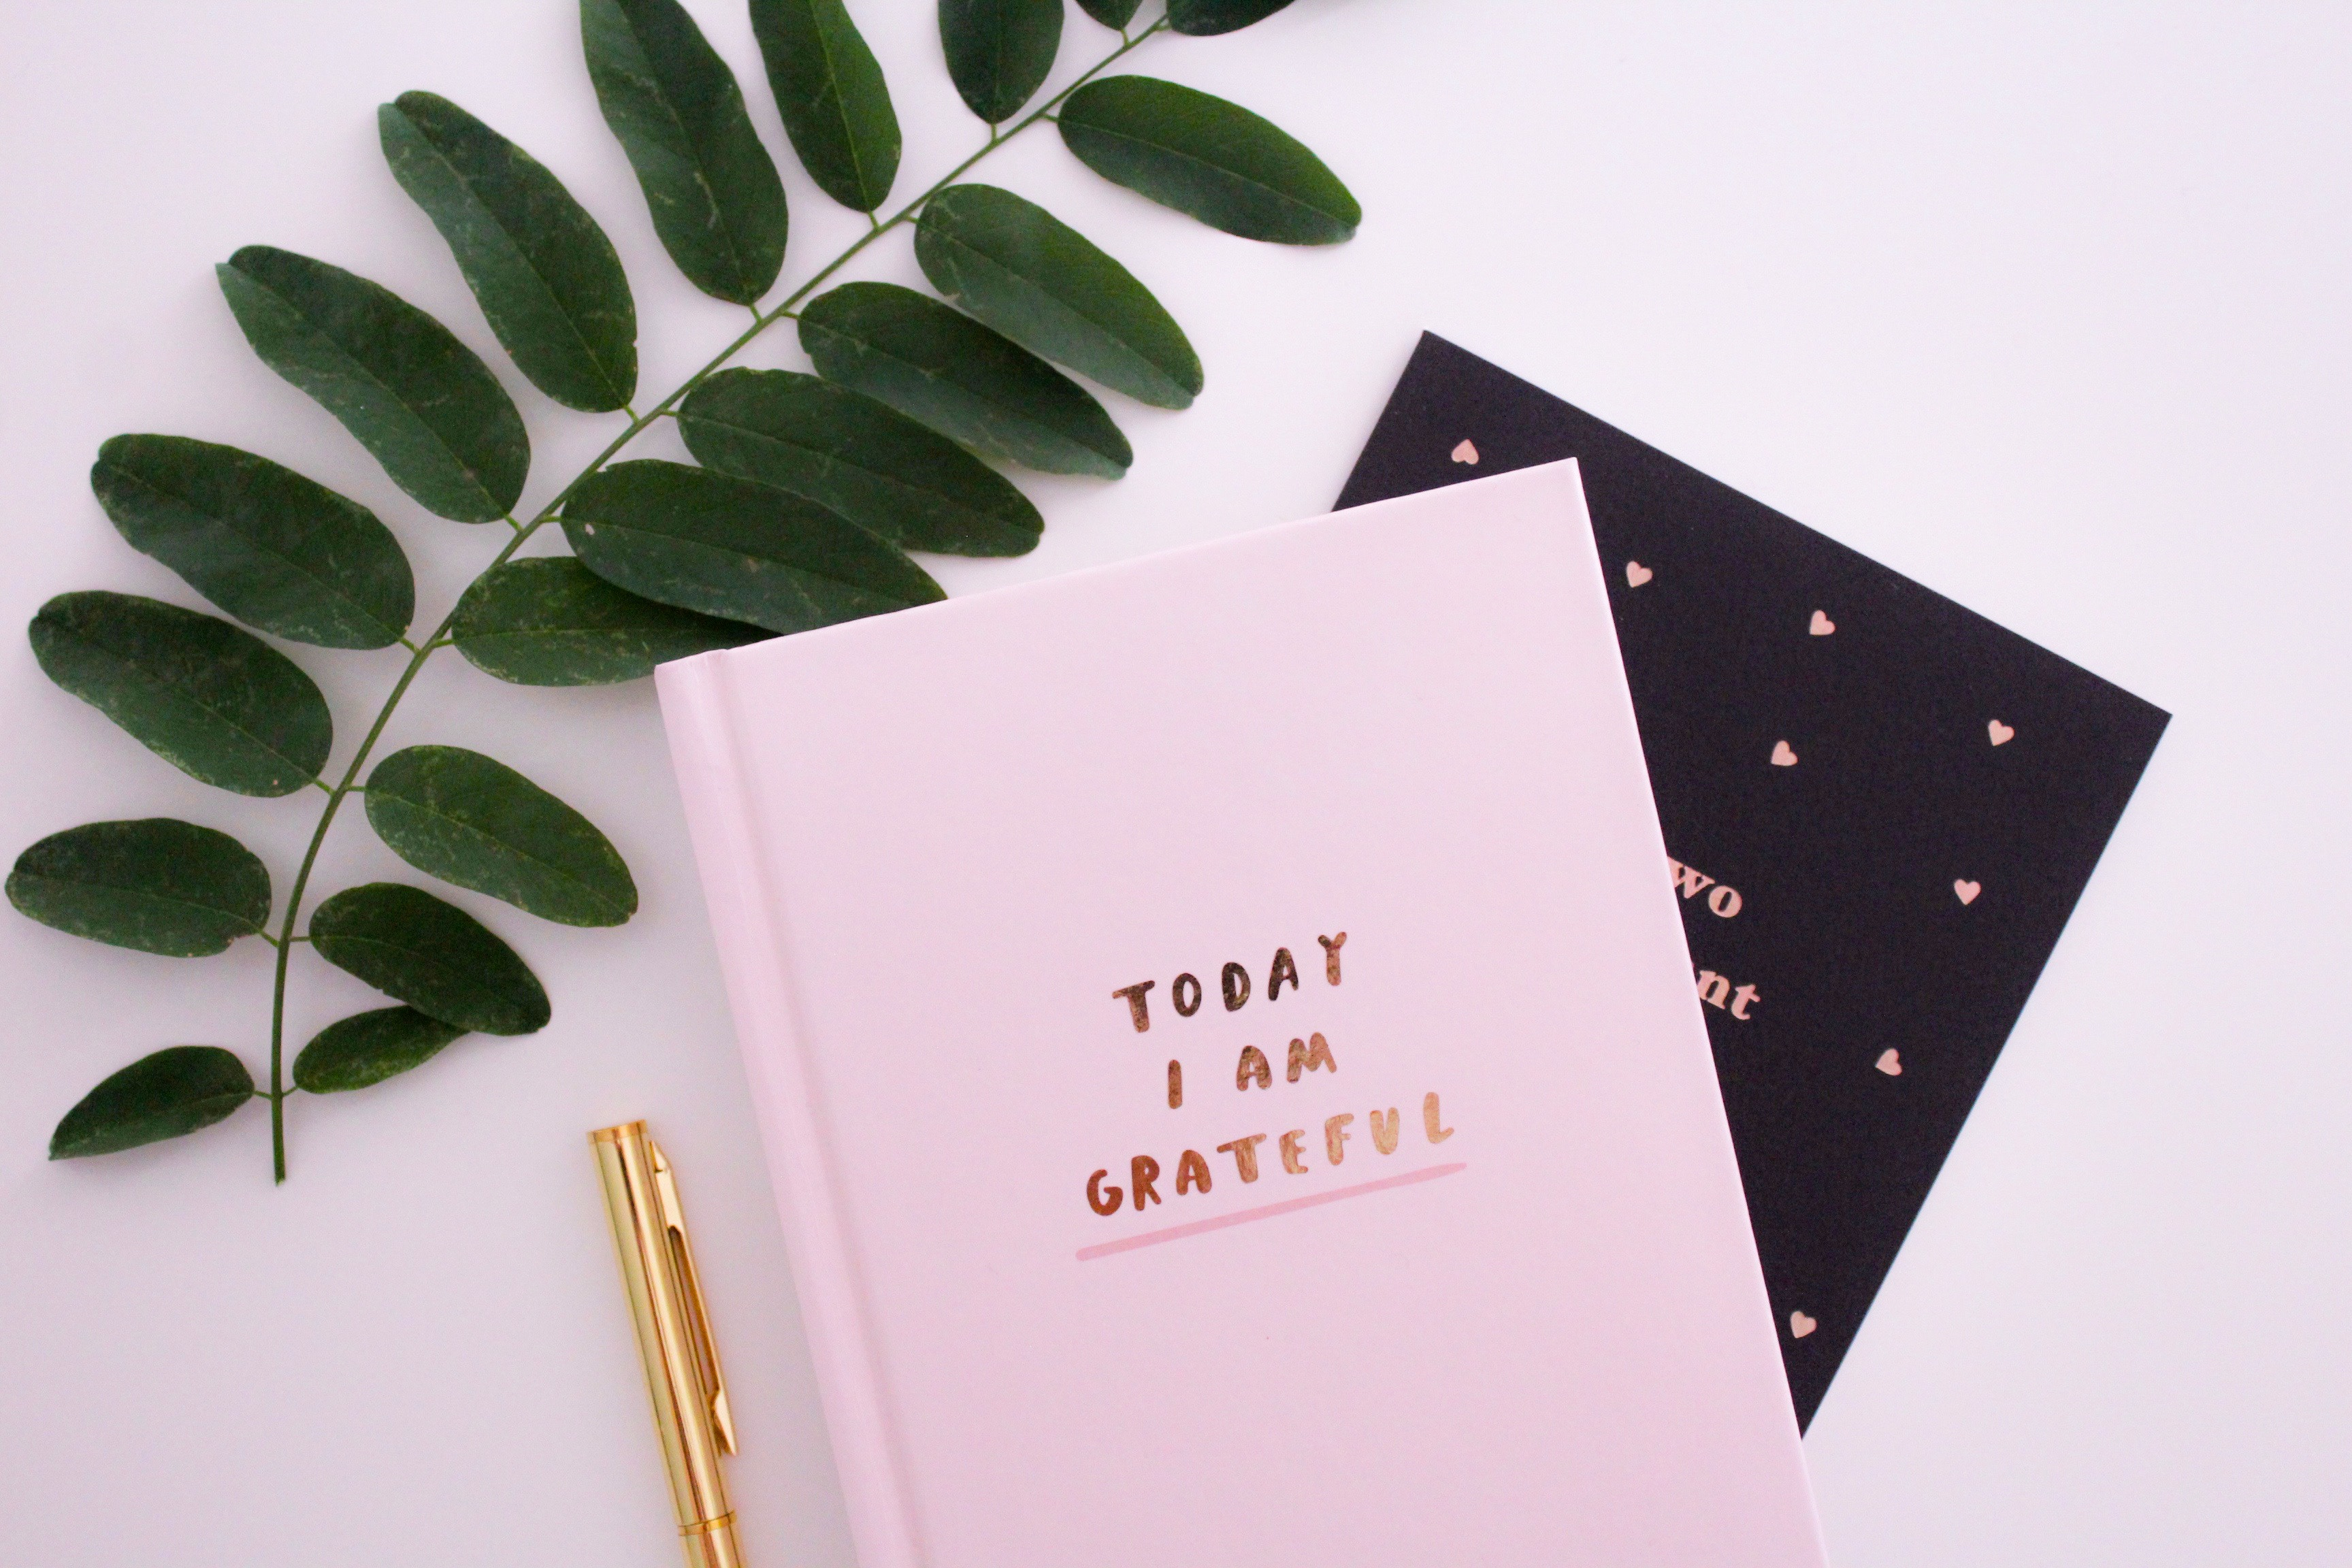 Learn about positive effects journaling can have